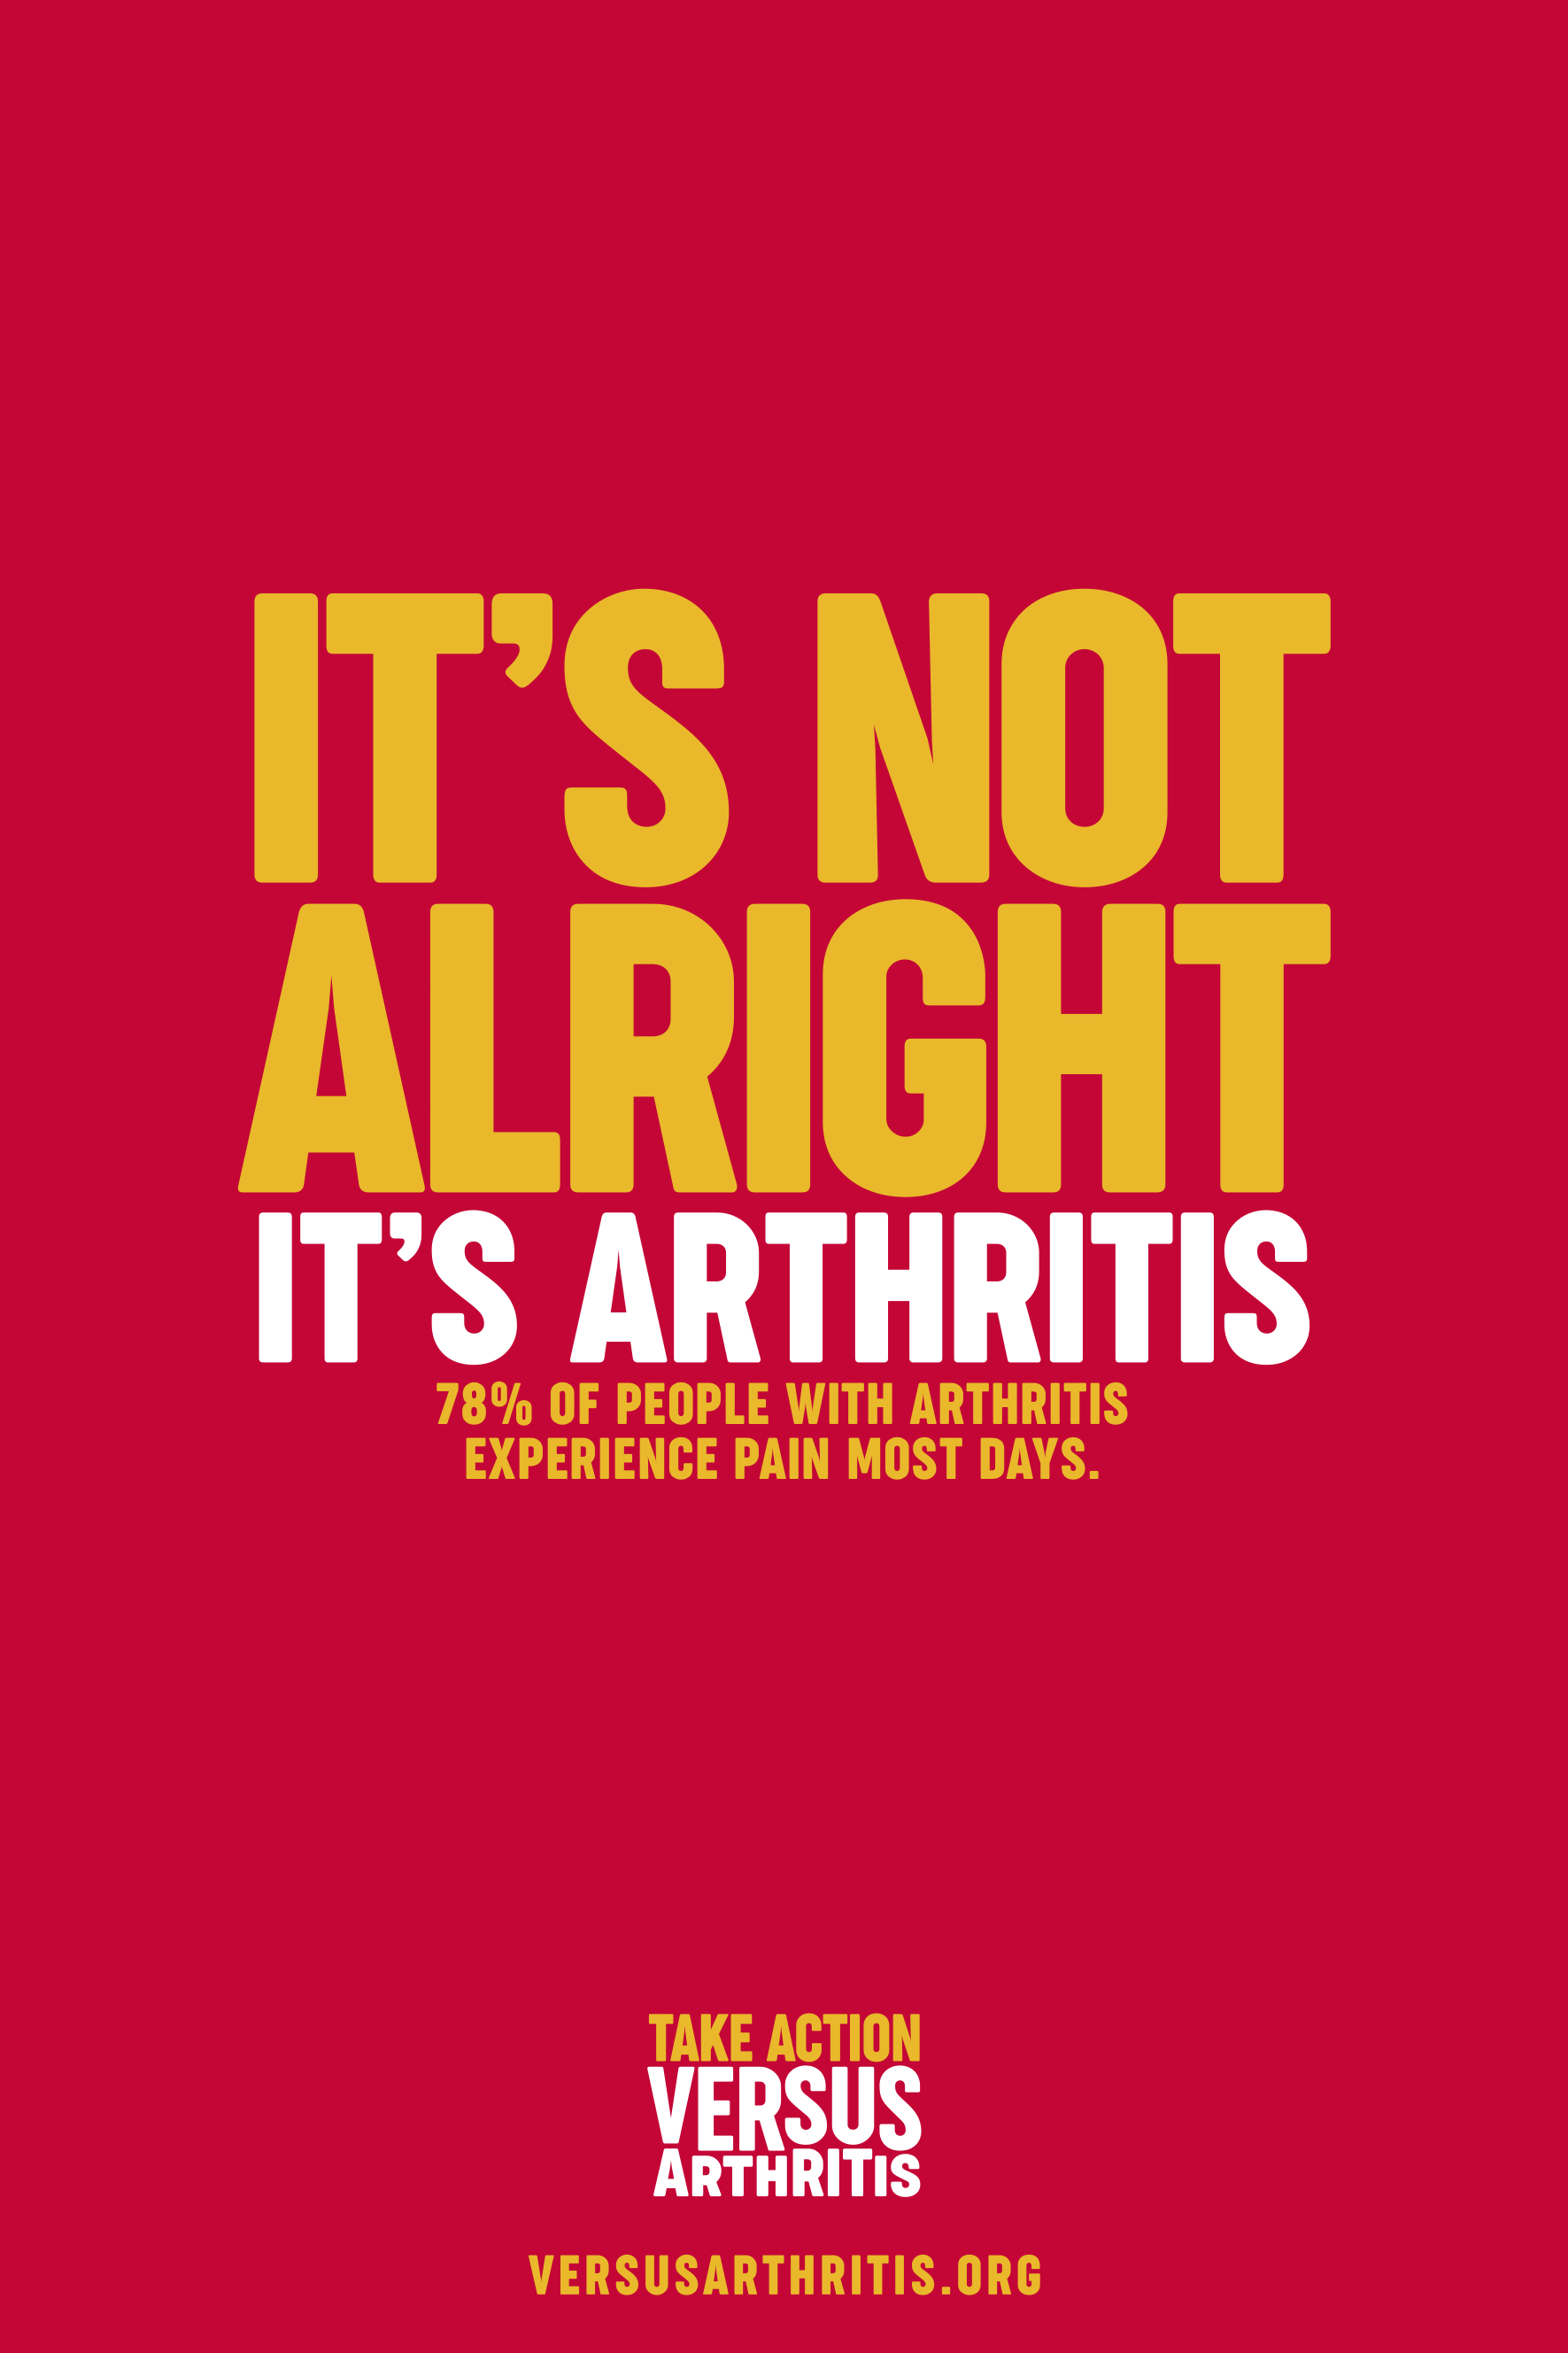 Versus Arthritis launches campaign urging people to take condition seriously ahead of World Arthritis Day